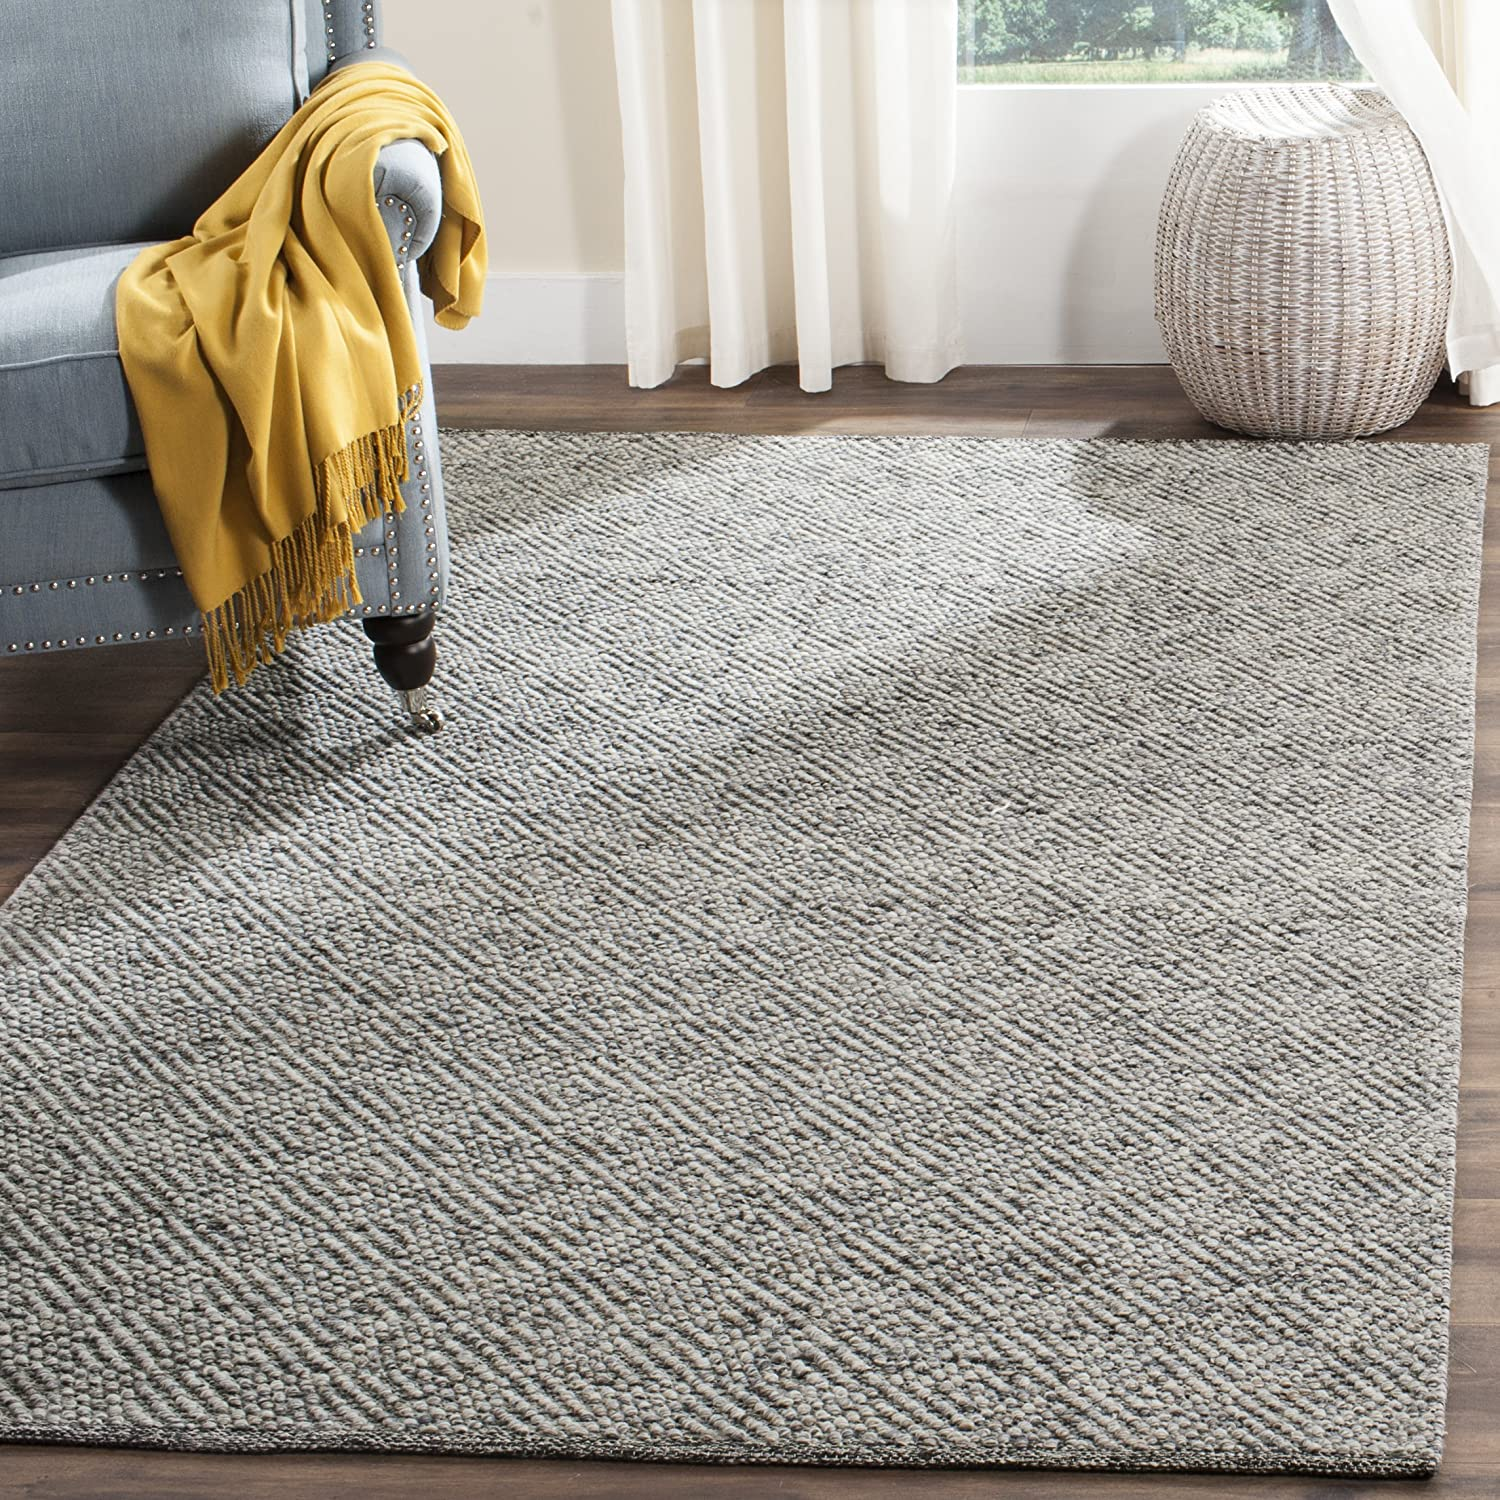 Safavieh Natura Collection NAT503C Hand-Woven Camel and Grey Area Rug (9' x 12')